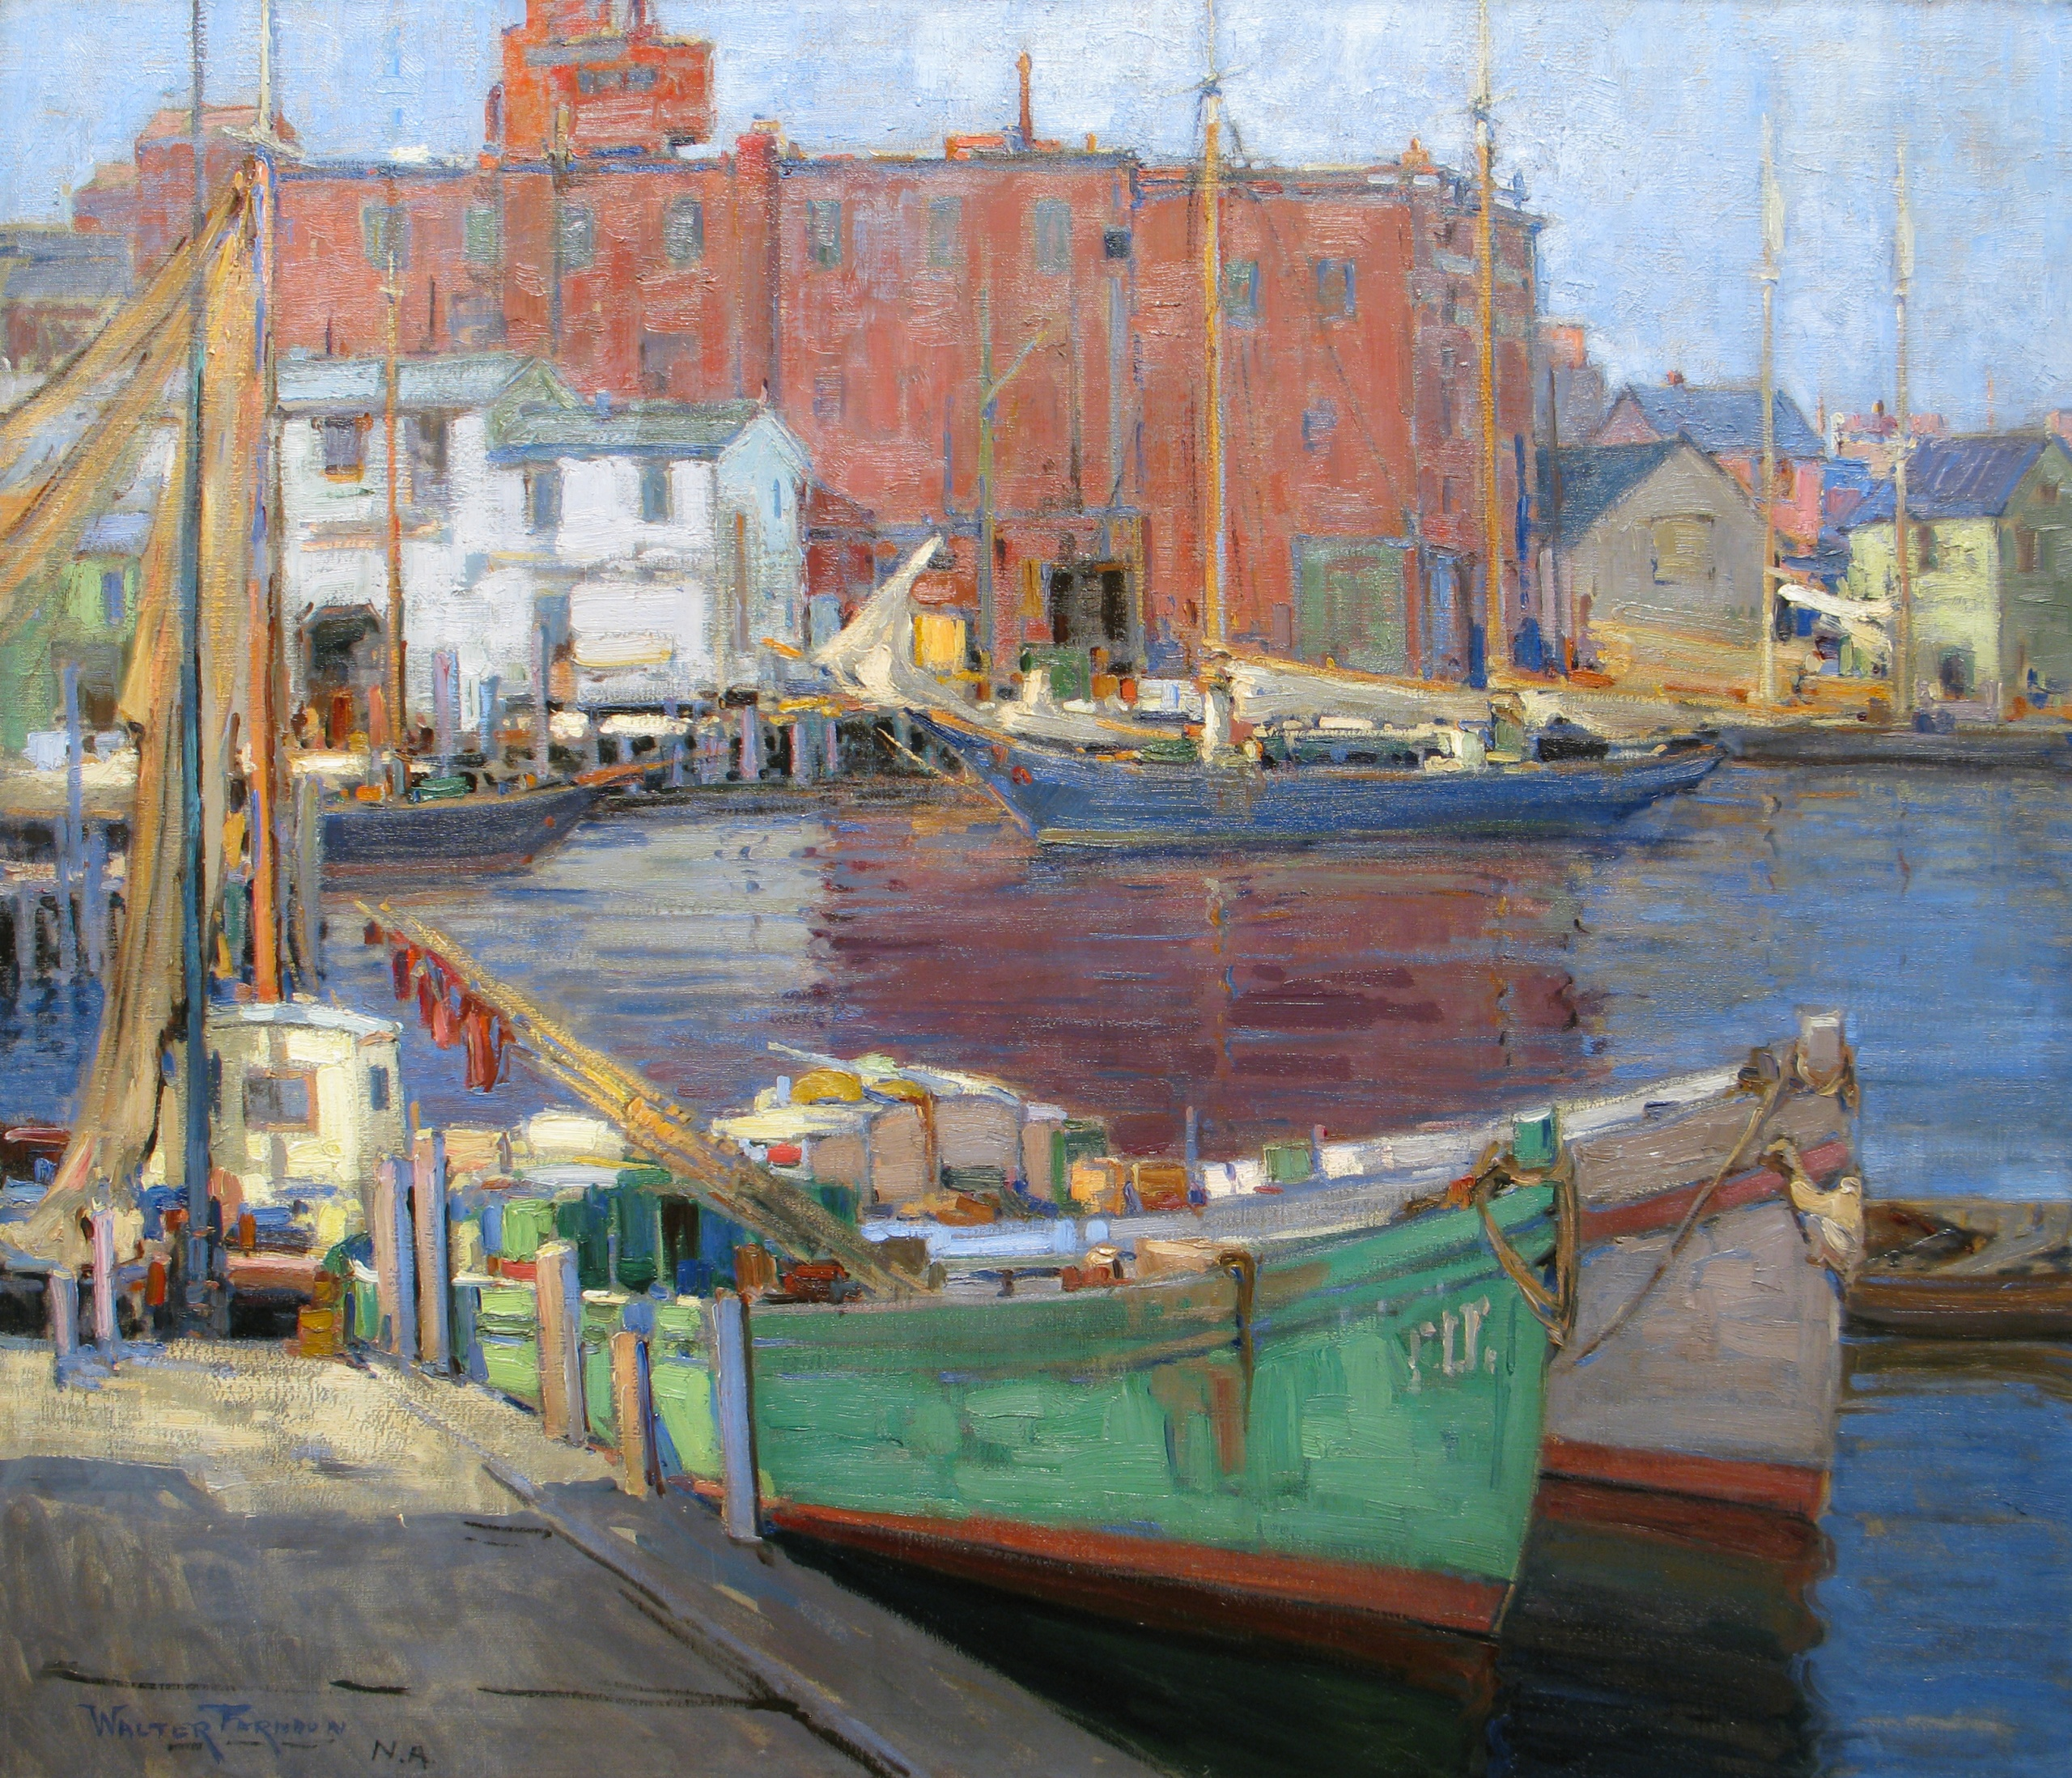 Farndon, Walter, The Docks, Gloucester, Massachuestts. Oil on board, 34 7/8 x 42 in. Collection of William Moe, Boulder, CO Image courtesy of Vose Galleries, Boston, MA.